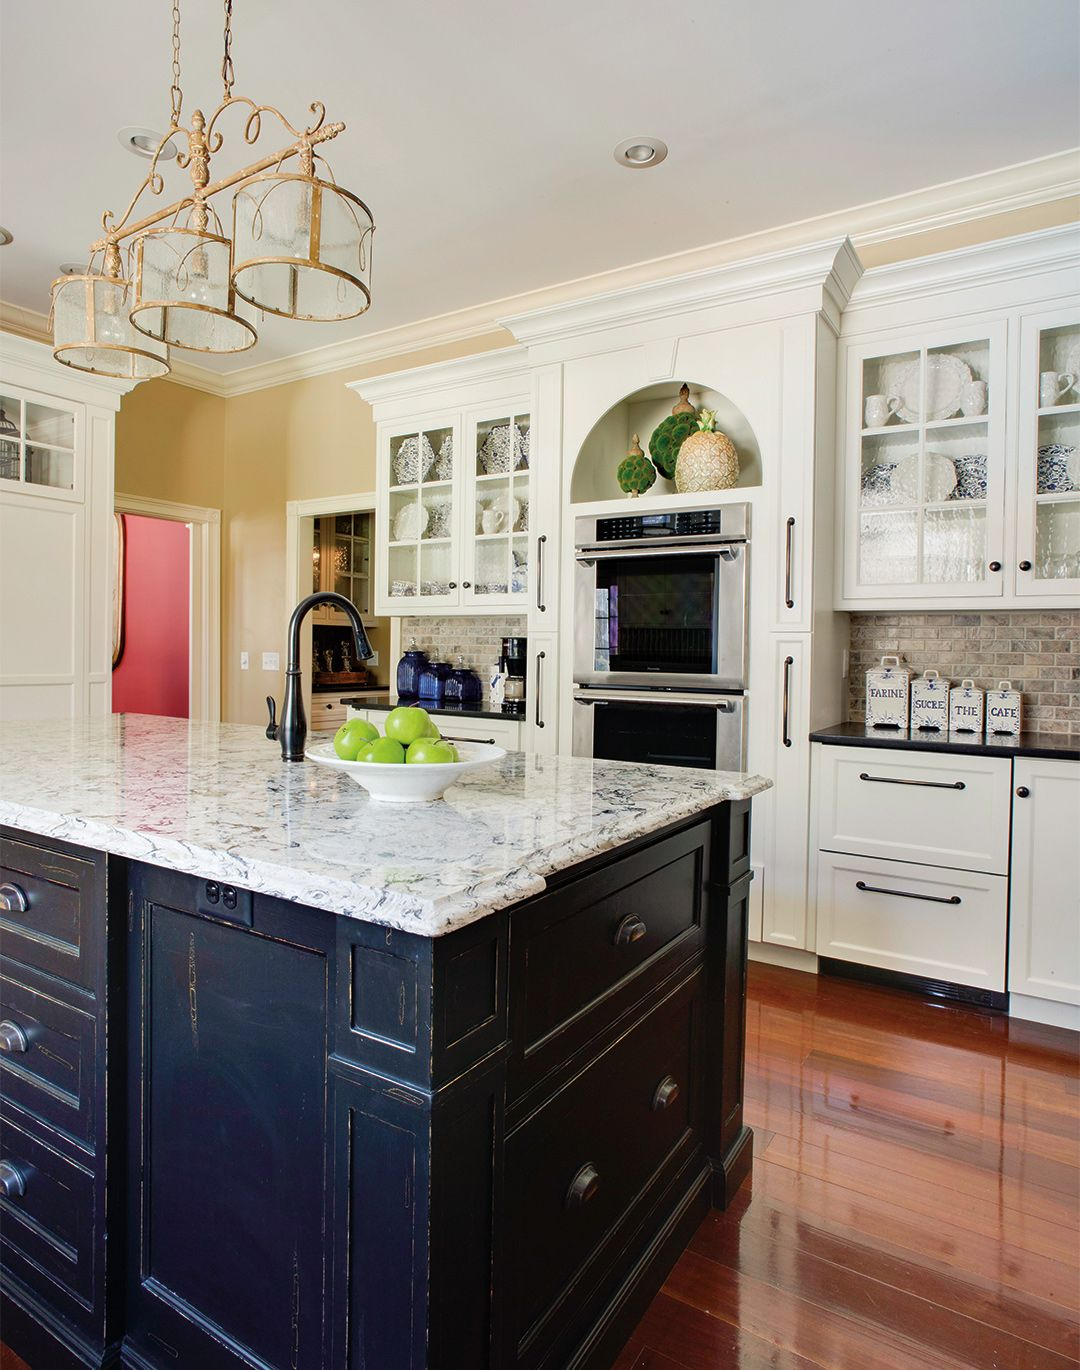 Traditional Kitchen Cabinets With Ample Space For Displaying Fine Plate And Dishware Traditional Kitchen Traditional Kitchen Cabinets Kitchen Inspirations